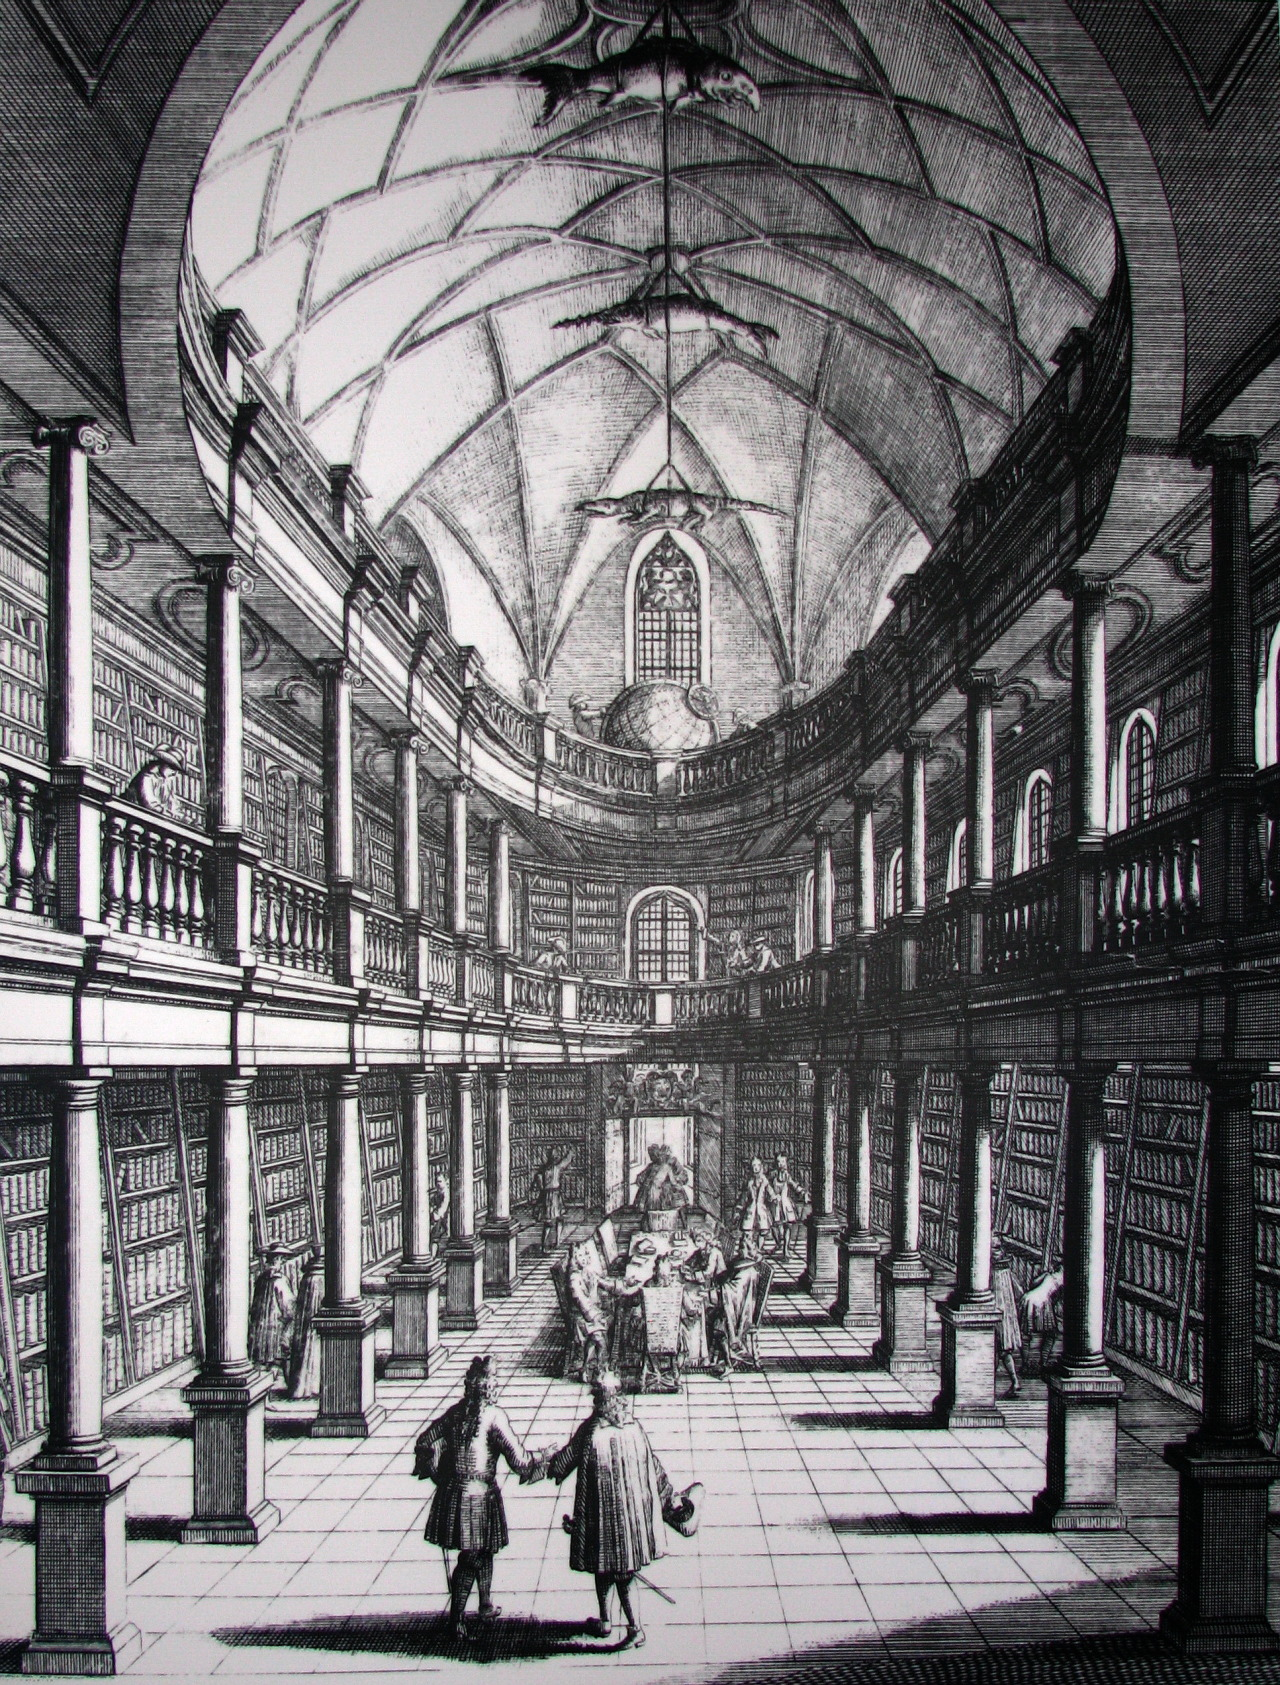 The library inside the Wasserkirche in 1719, Zürich